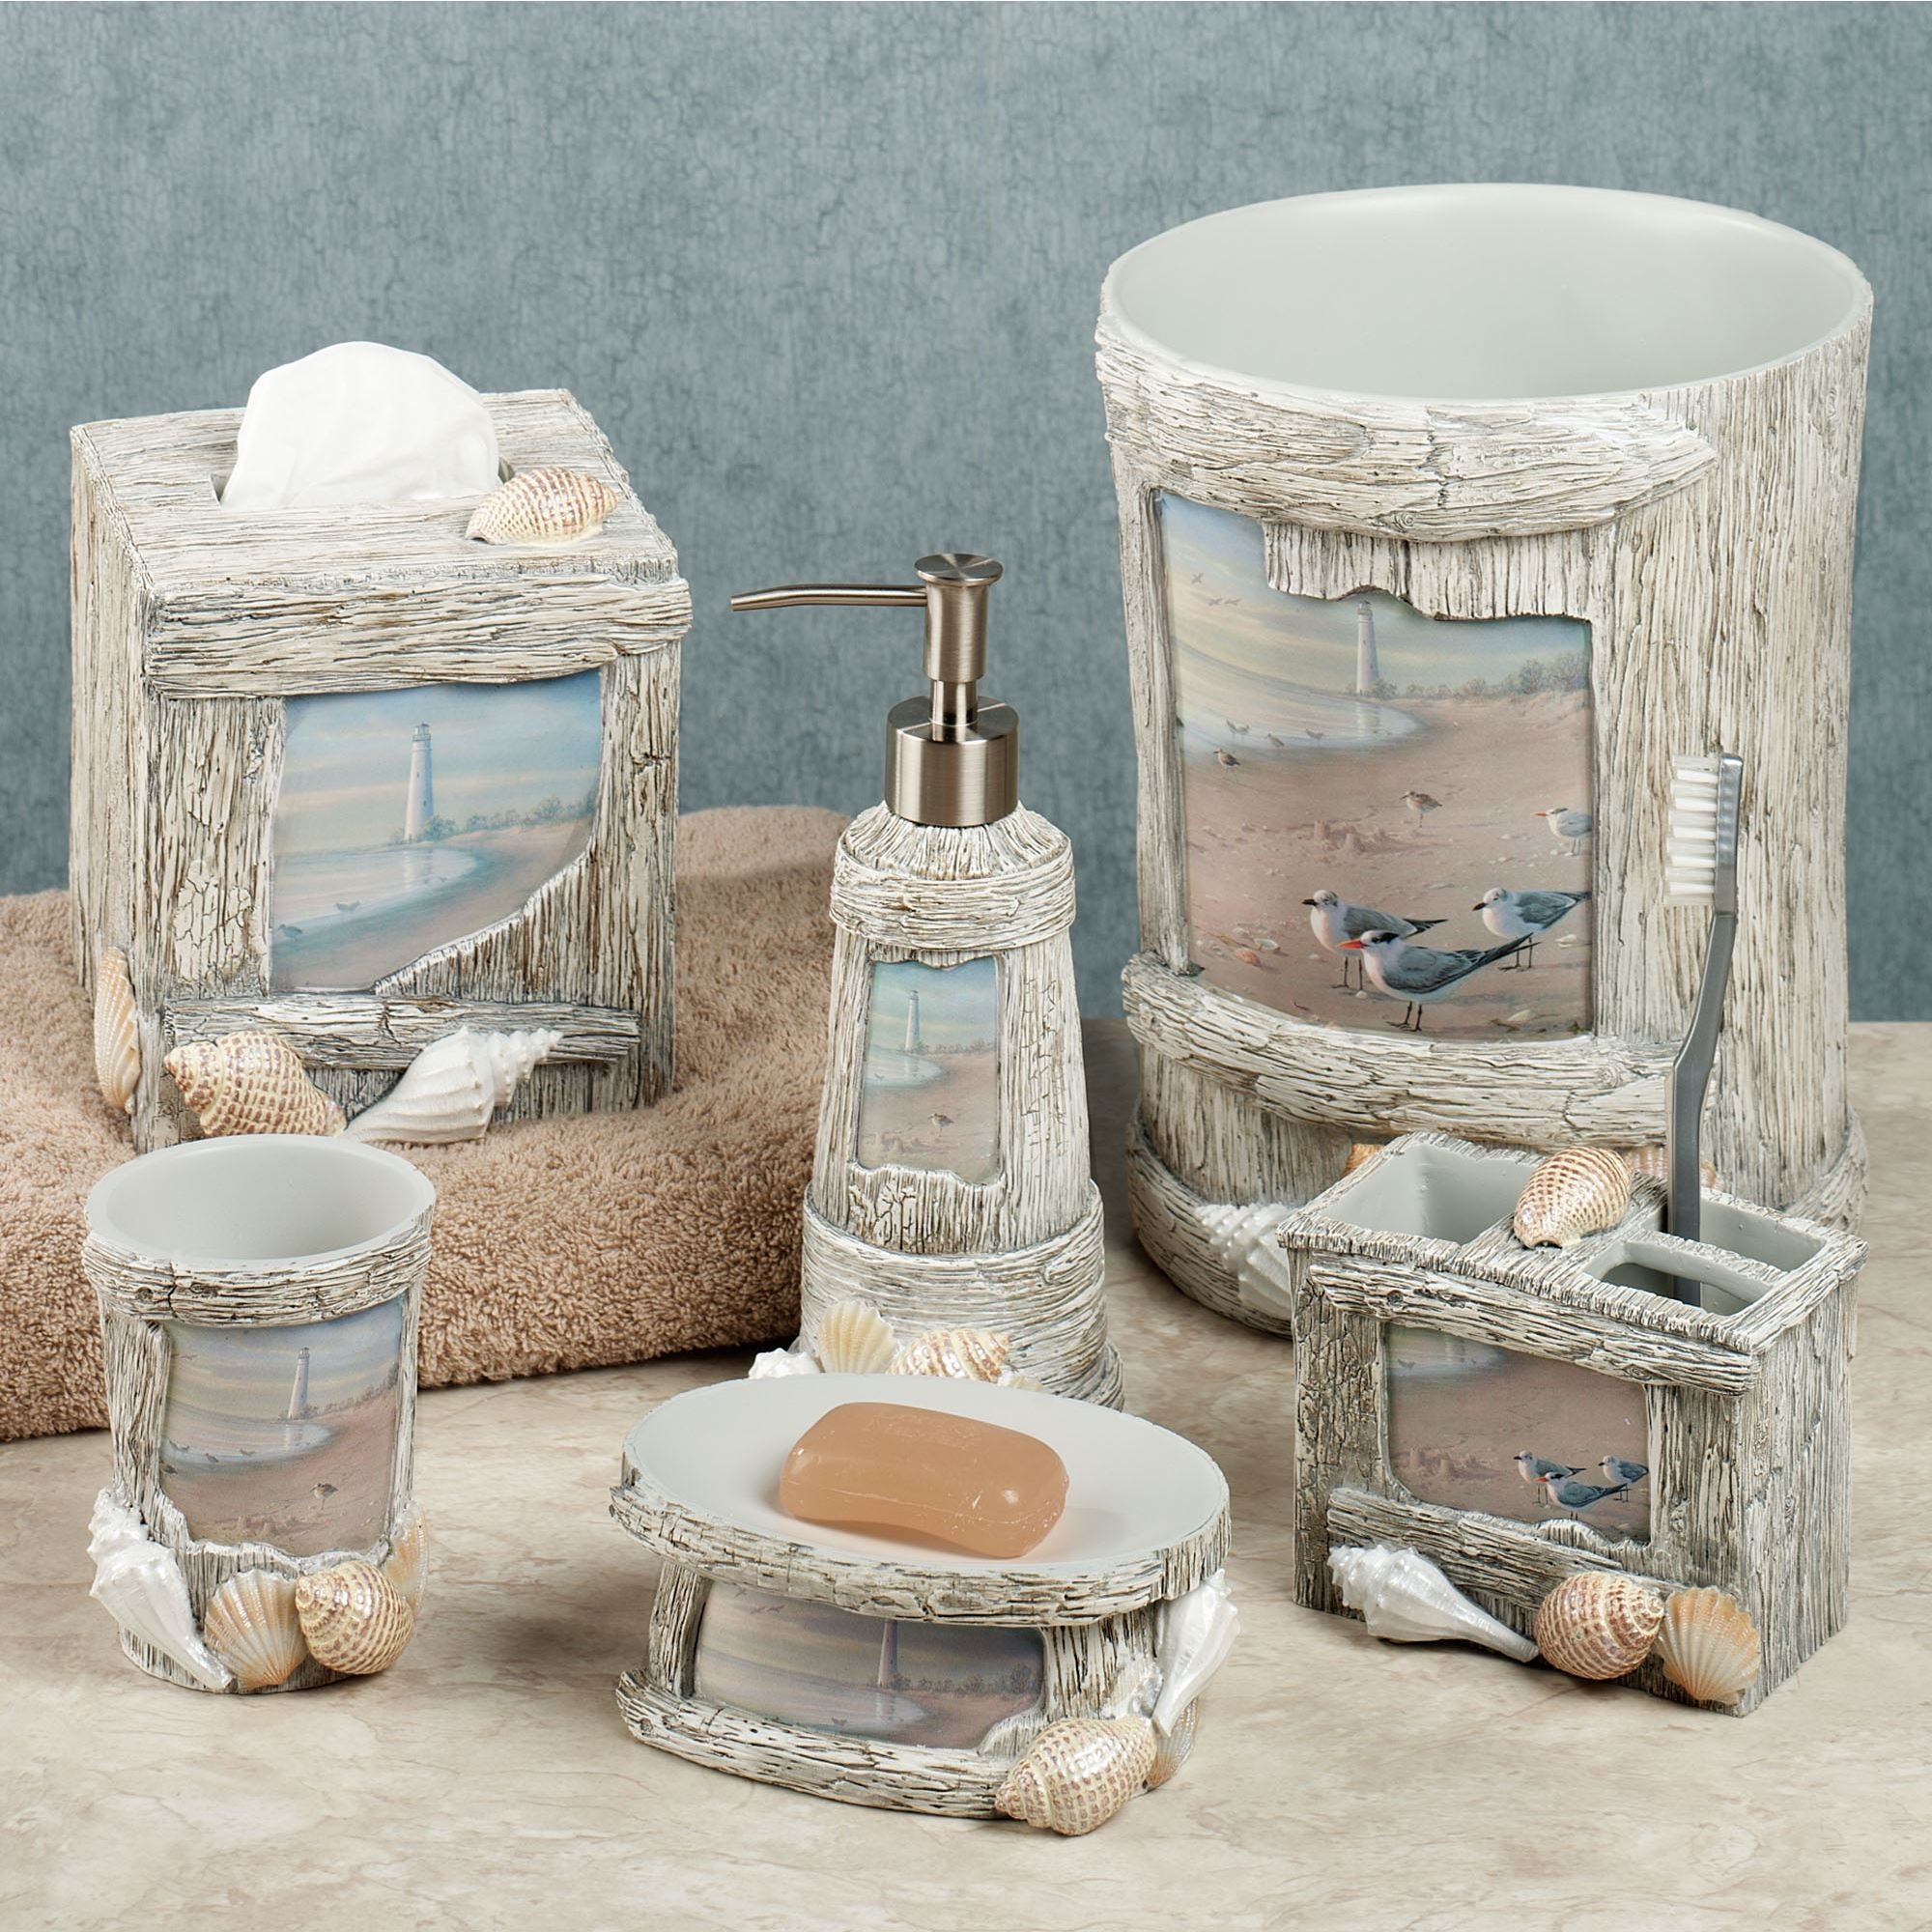 Beach Bathroom Set